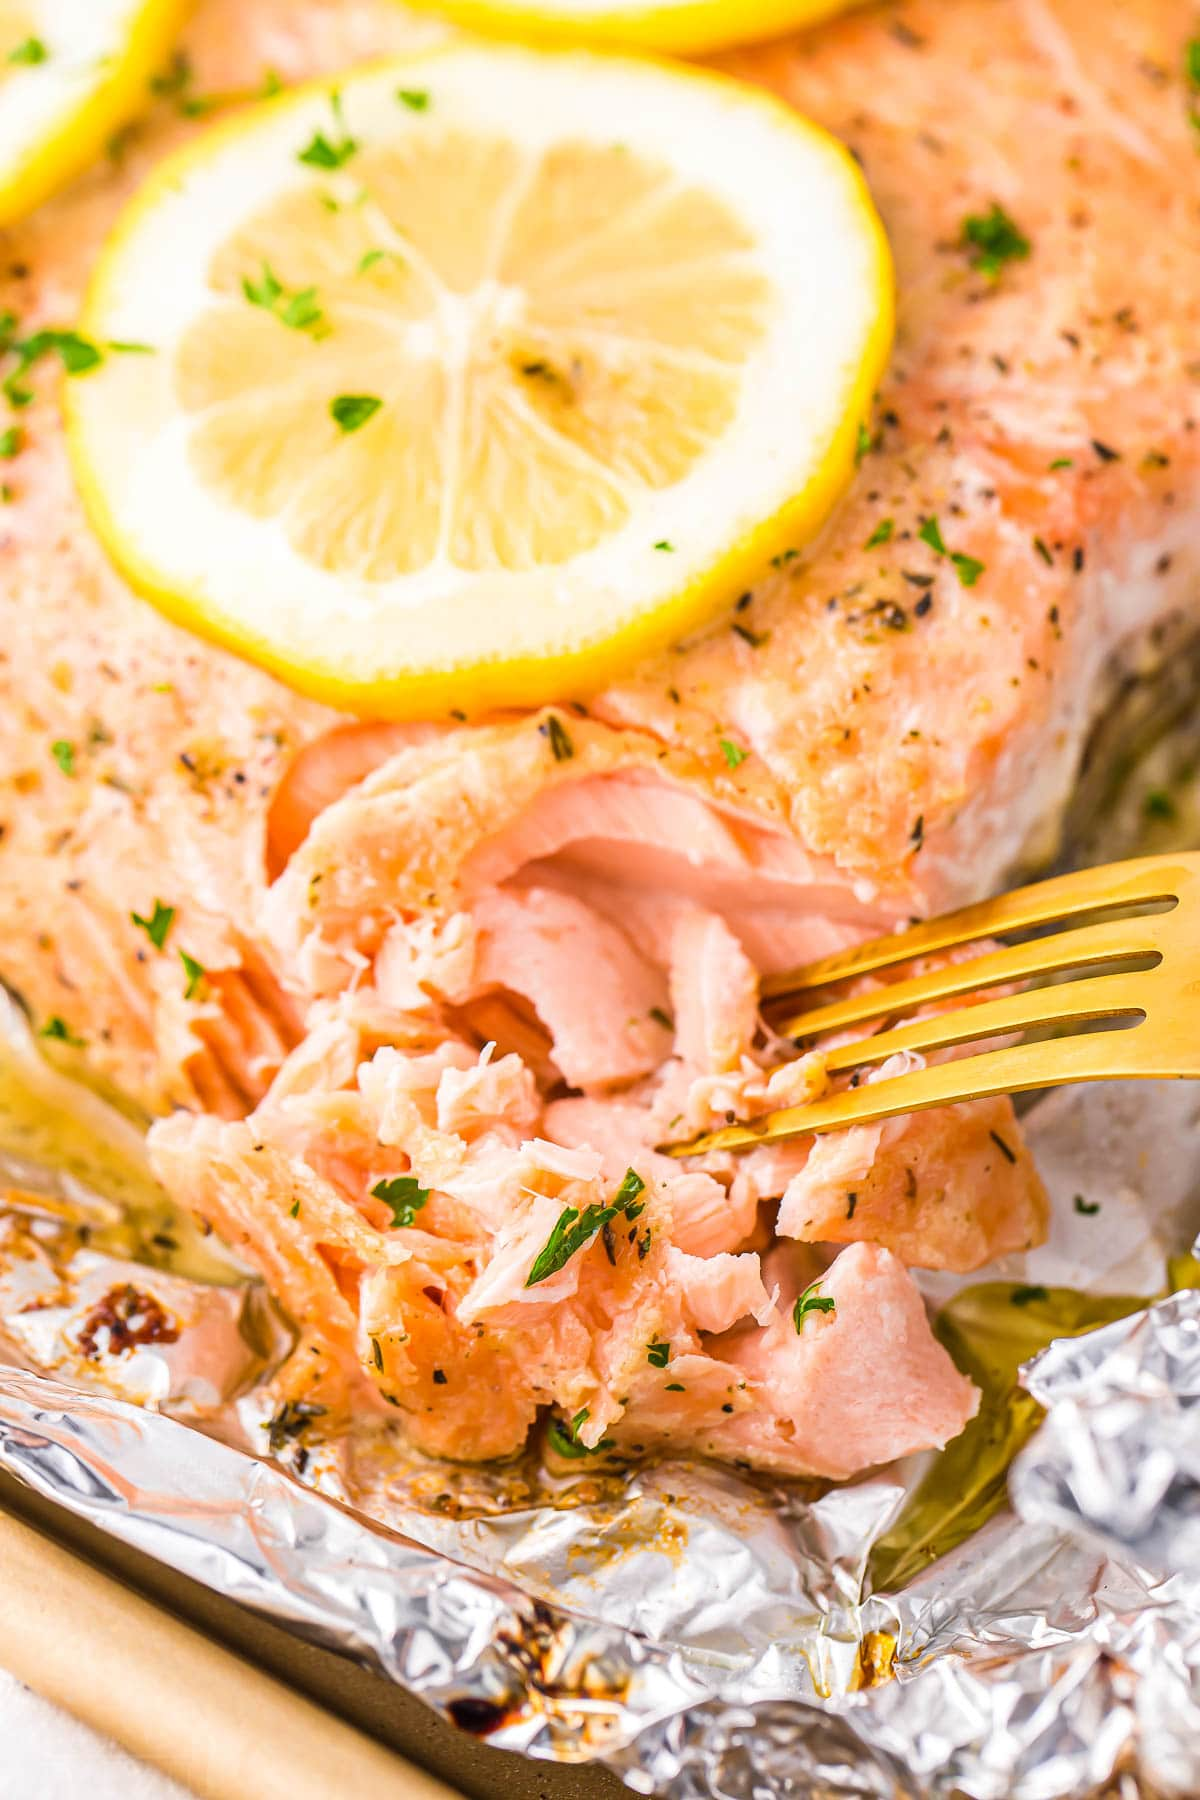 tender flaky salmon being flaked with a gold fork on a large salmon filet topped with a lemon slice.